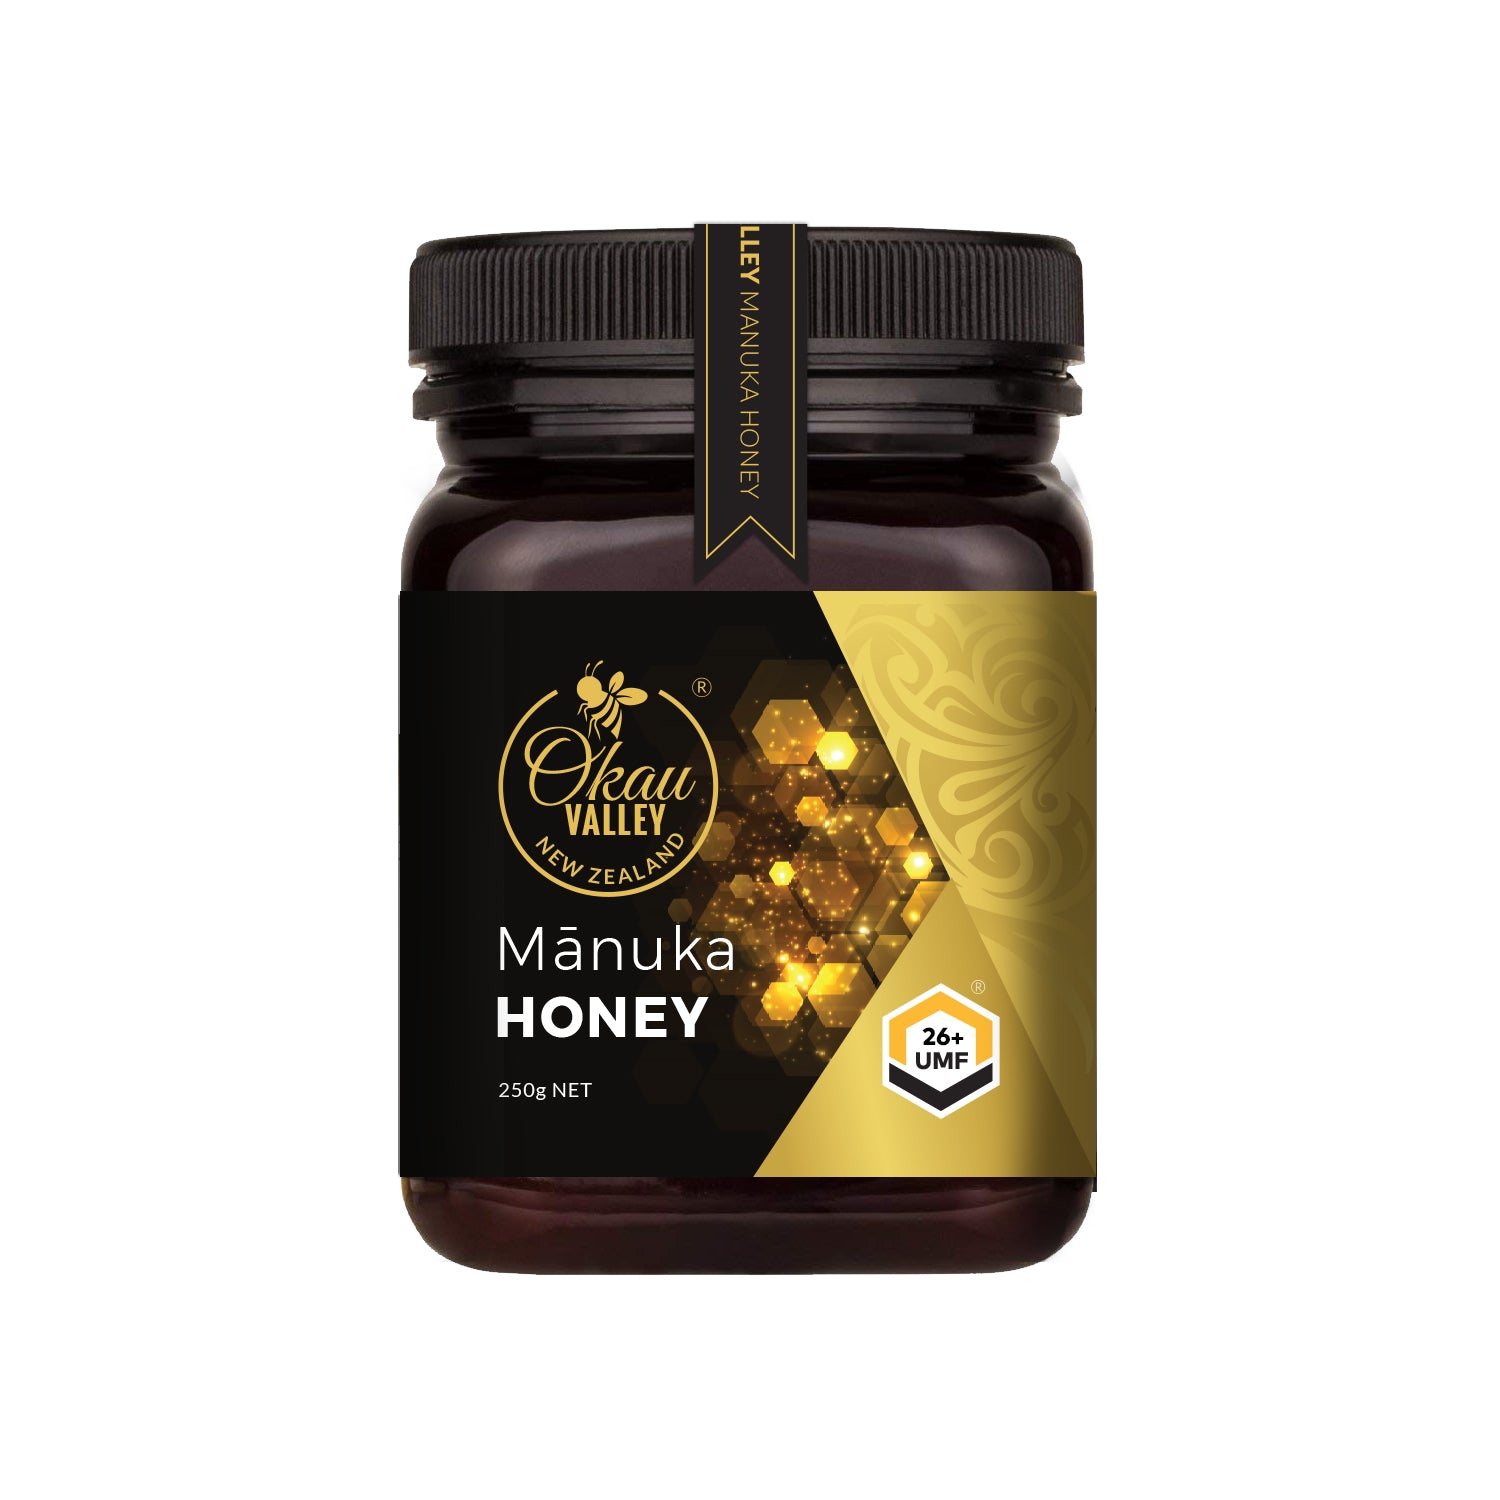 Okau Valley UMF 26+ Mānuka Honey